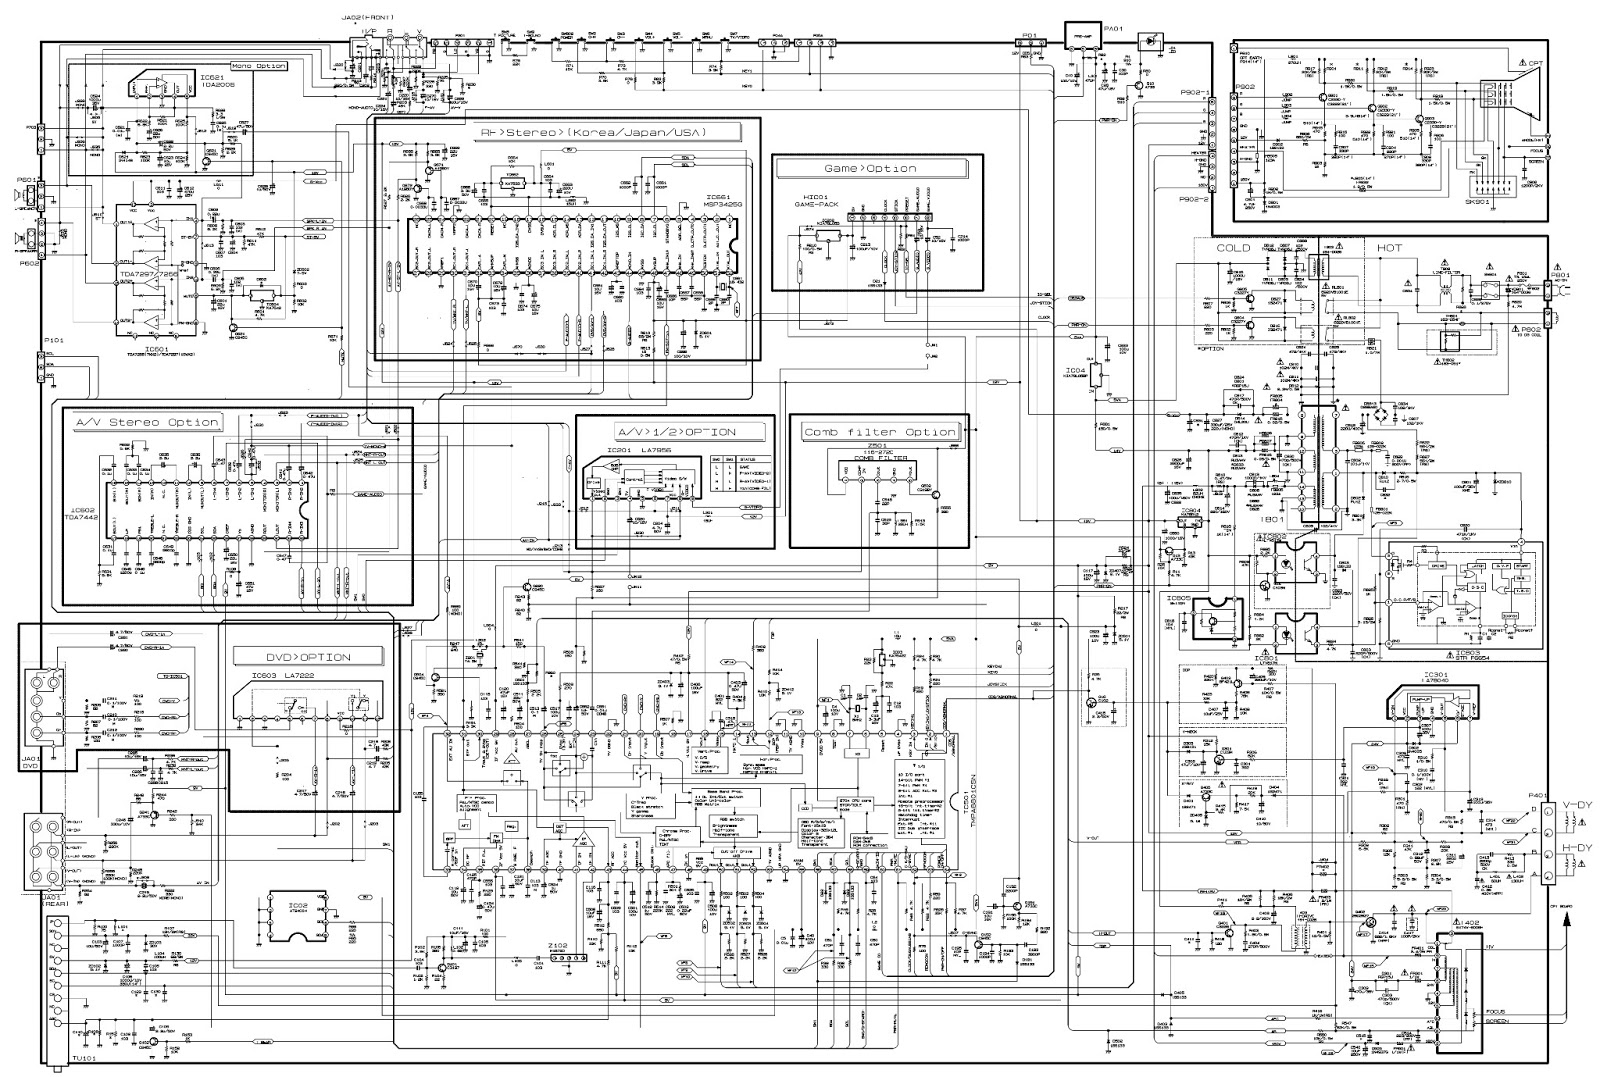 small resolution of lg rp21fd10 schematic diagram used ics tda2006 tda7297 7296 rh electronicshelponline blogspot com lg tv diagram